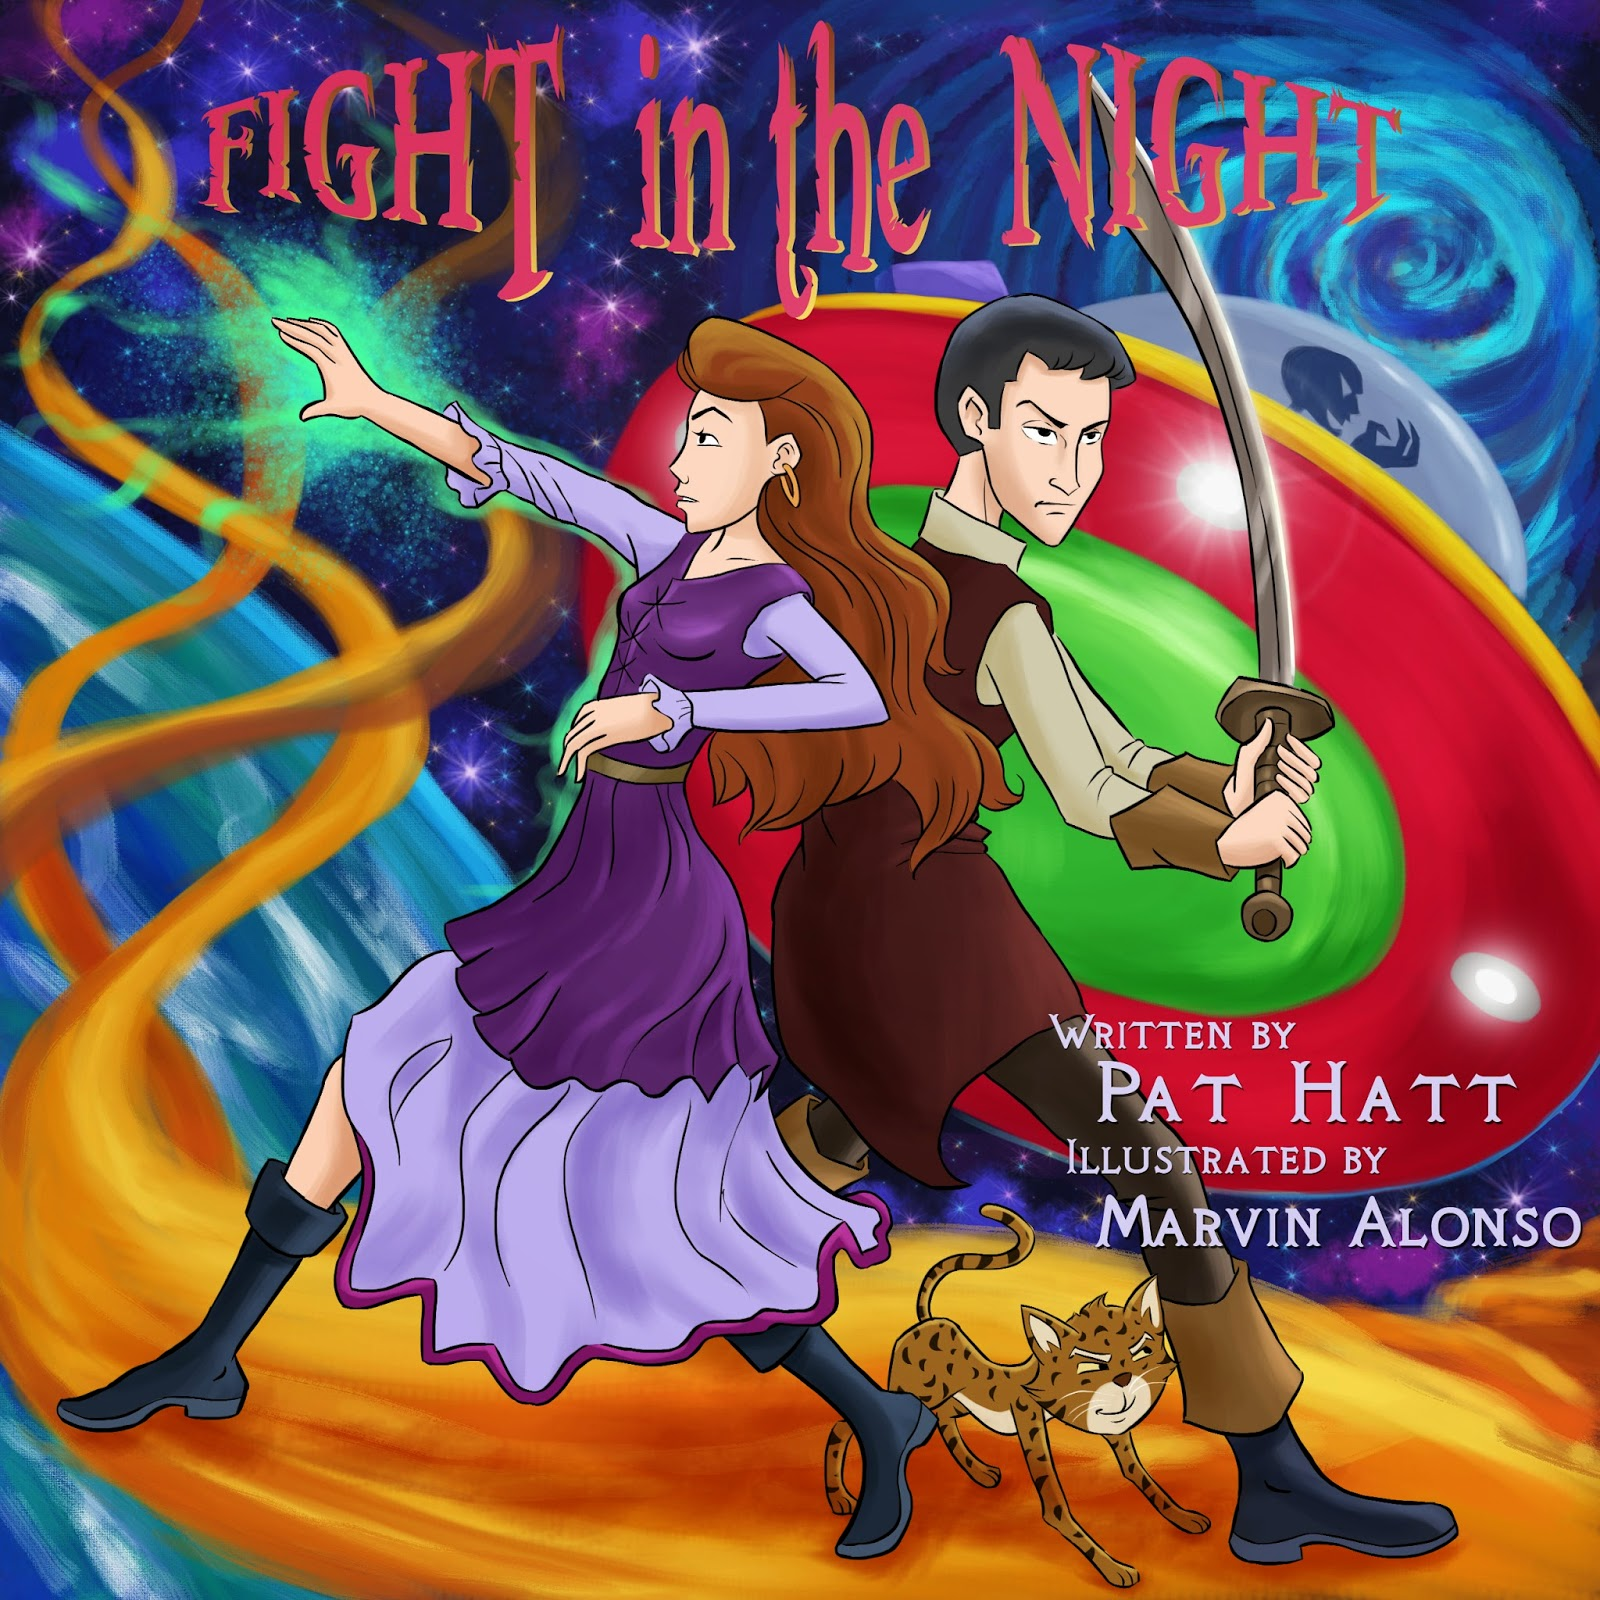 http://www.amazon.com/Fight-Night-Pat-Hatt-ebook/dp/B00I3HIC3E/ref=sr_1_2?ie=UTF8&qid=1391444364&sr=8-2&keywords=pat+hatt